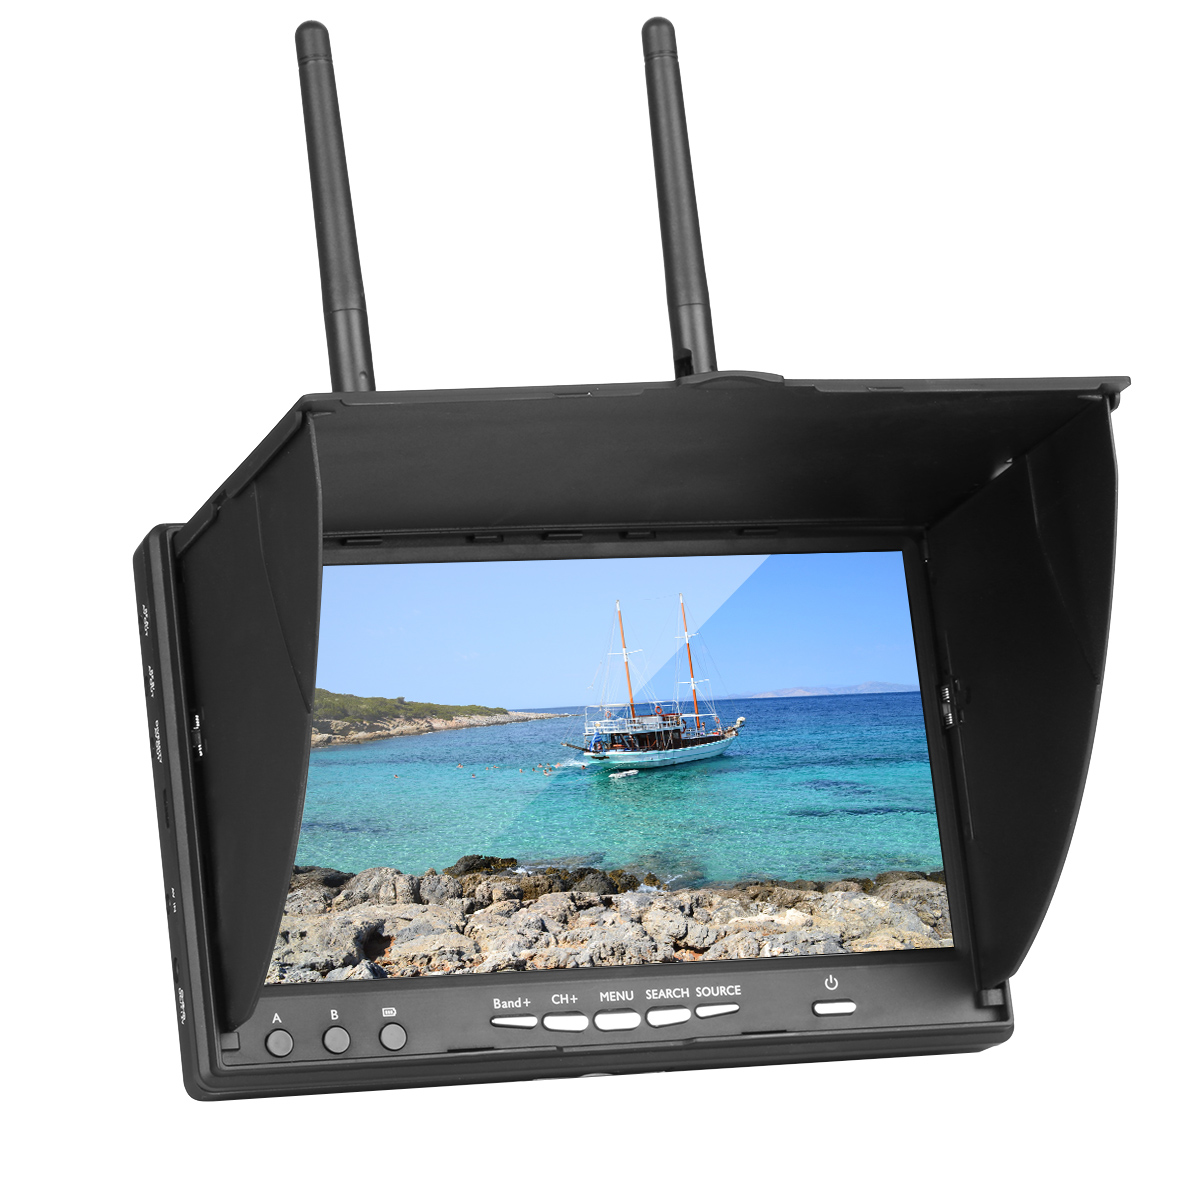 LCD5802 LT5802S 5802 5.8G 40CH 7 Inch Diversity Receiver Raceband Monitor With Built-In Battery For FPV DroneLCD5802 LT5802S 5802 5.8G 40CH 7 Inch Diversity Receiver Raceband Monitor With Built-In Battery For FPV Drone